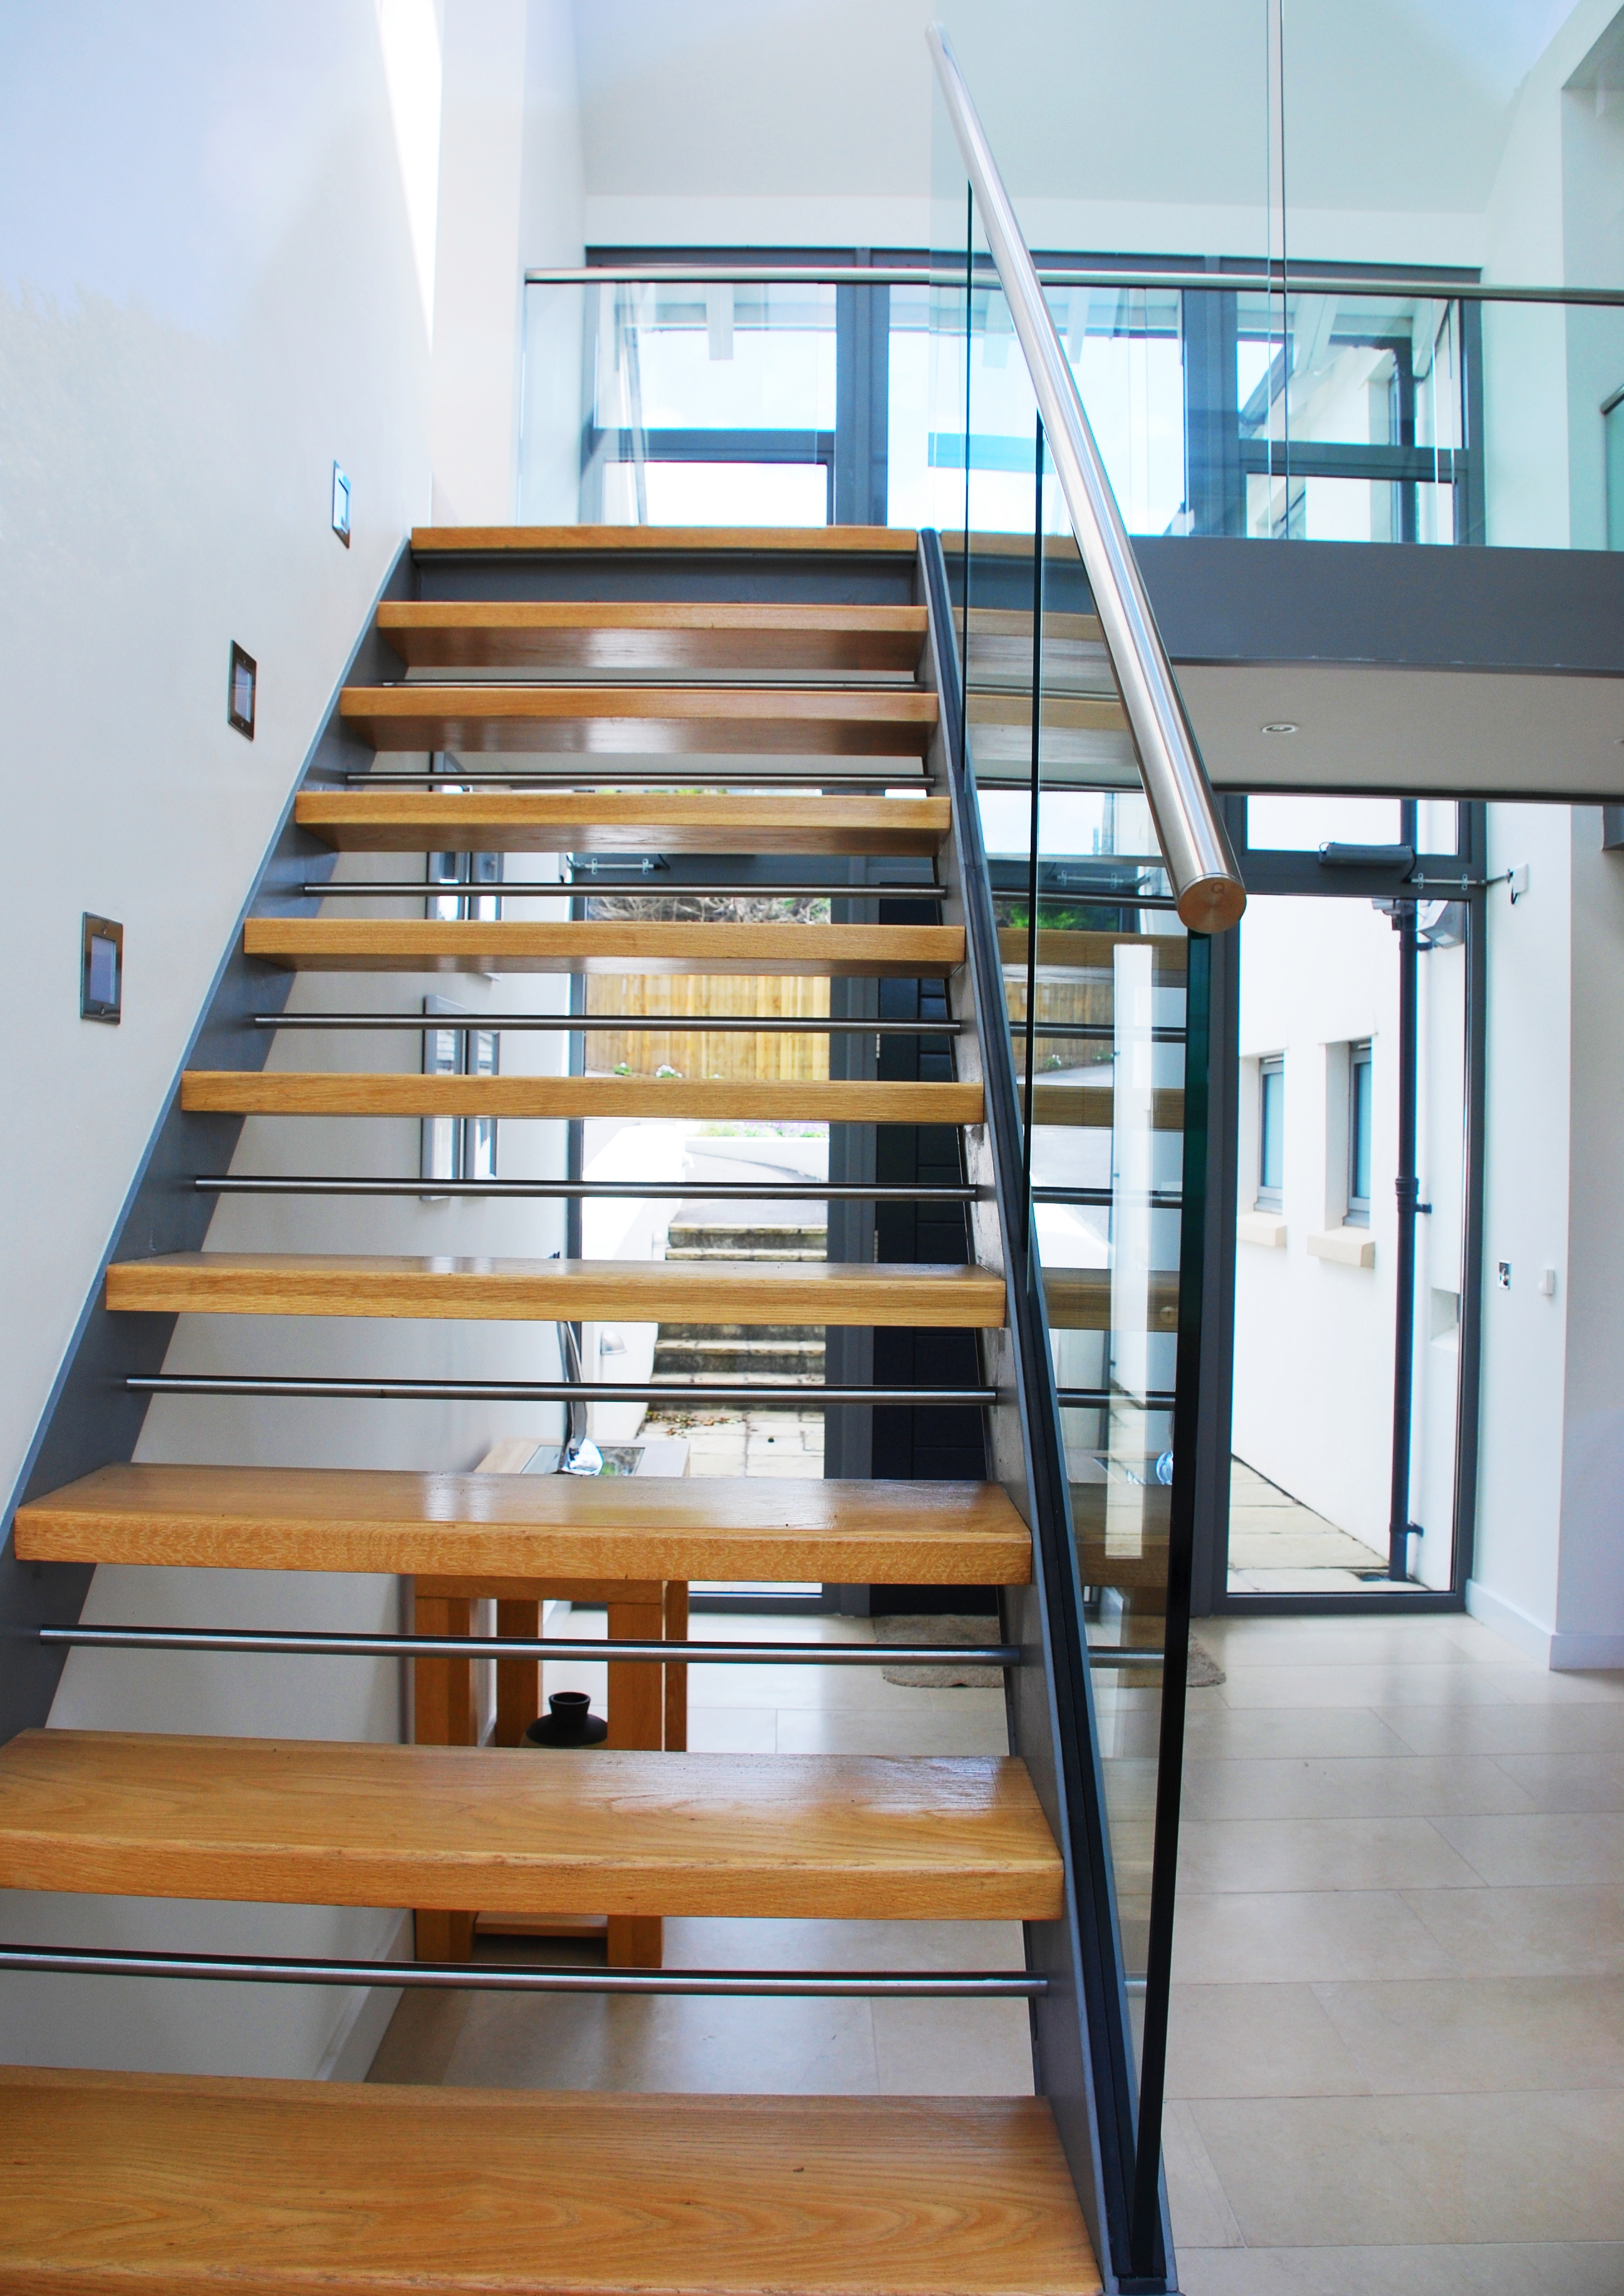 Kiln Reach staircase after the extensions and alterations